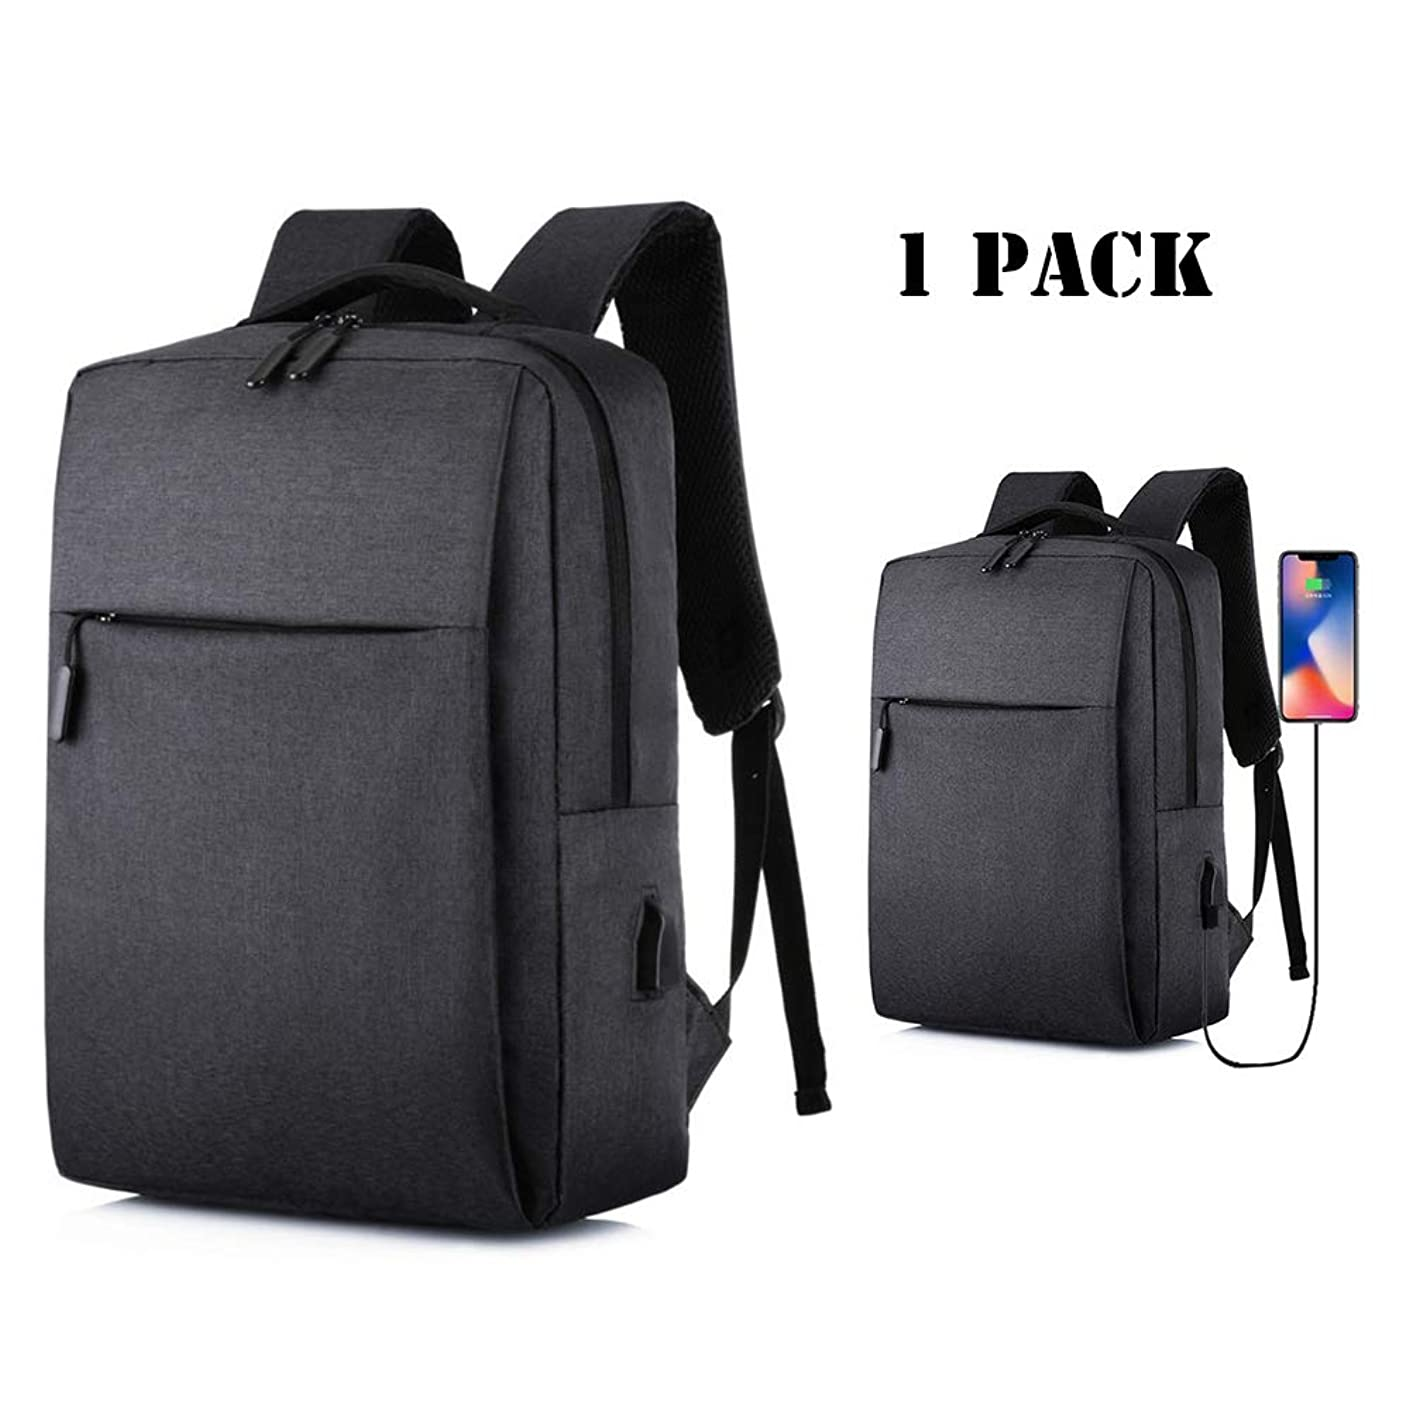 Emopeak 15.6 inch Laptop Backpack, Xbox One Backpack Travel Backpack with USB Charging Port for Men Womens Boys Girls, Anti-Theft Backpack Water Resistant College School Bag